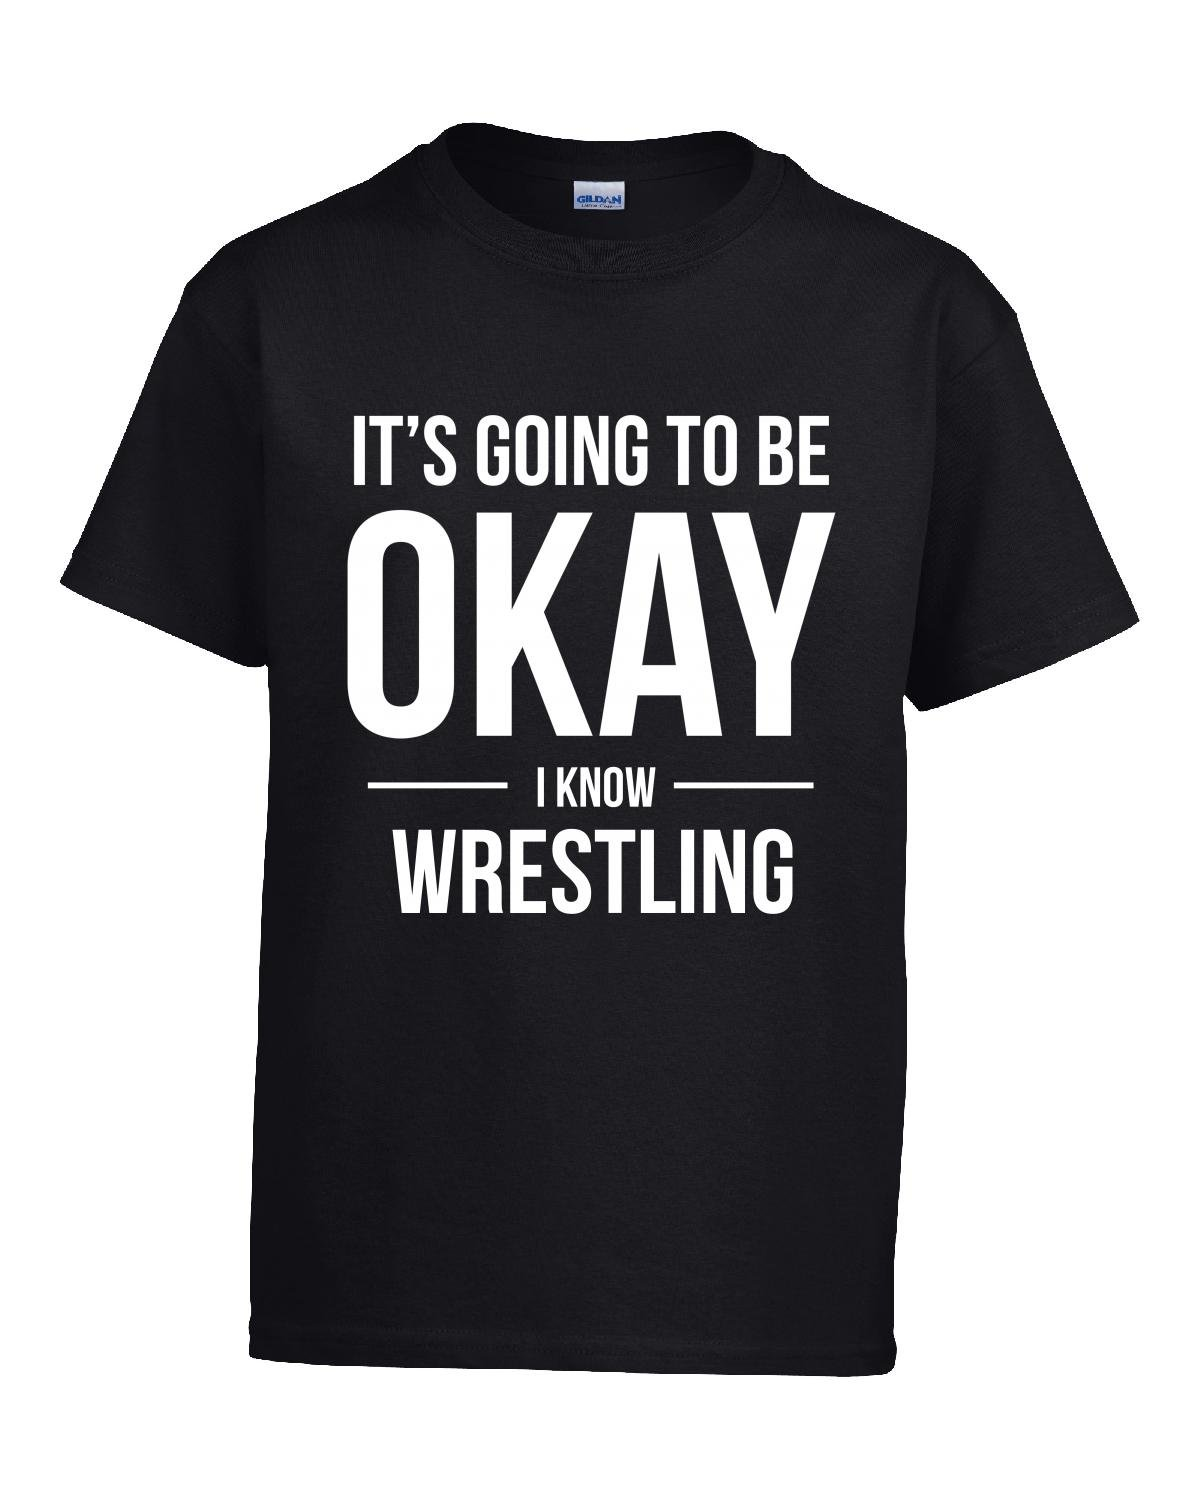 Its Going To Be Okay I Know Wrestling - Girl Kids T-shirt Kids S Black